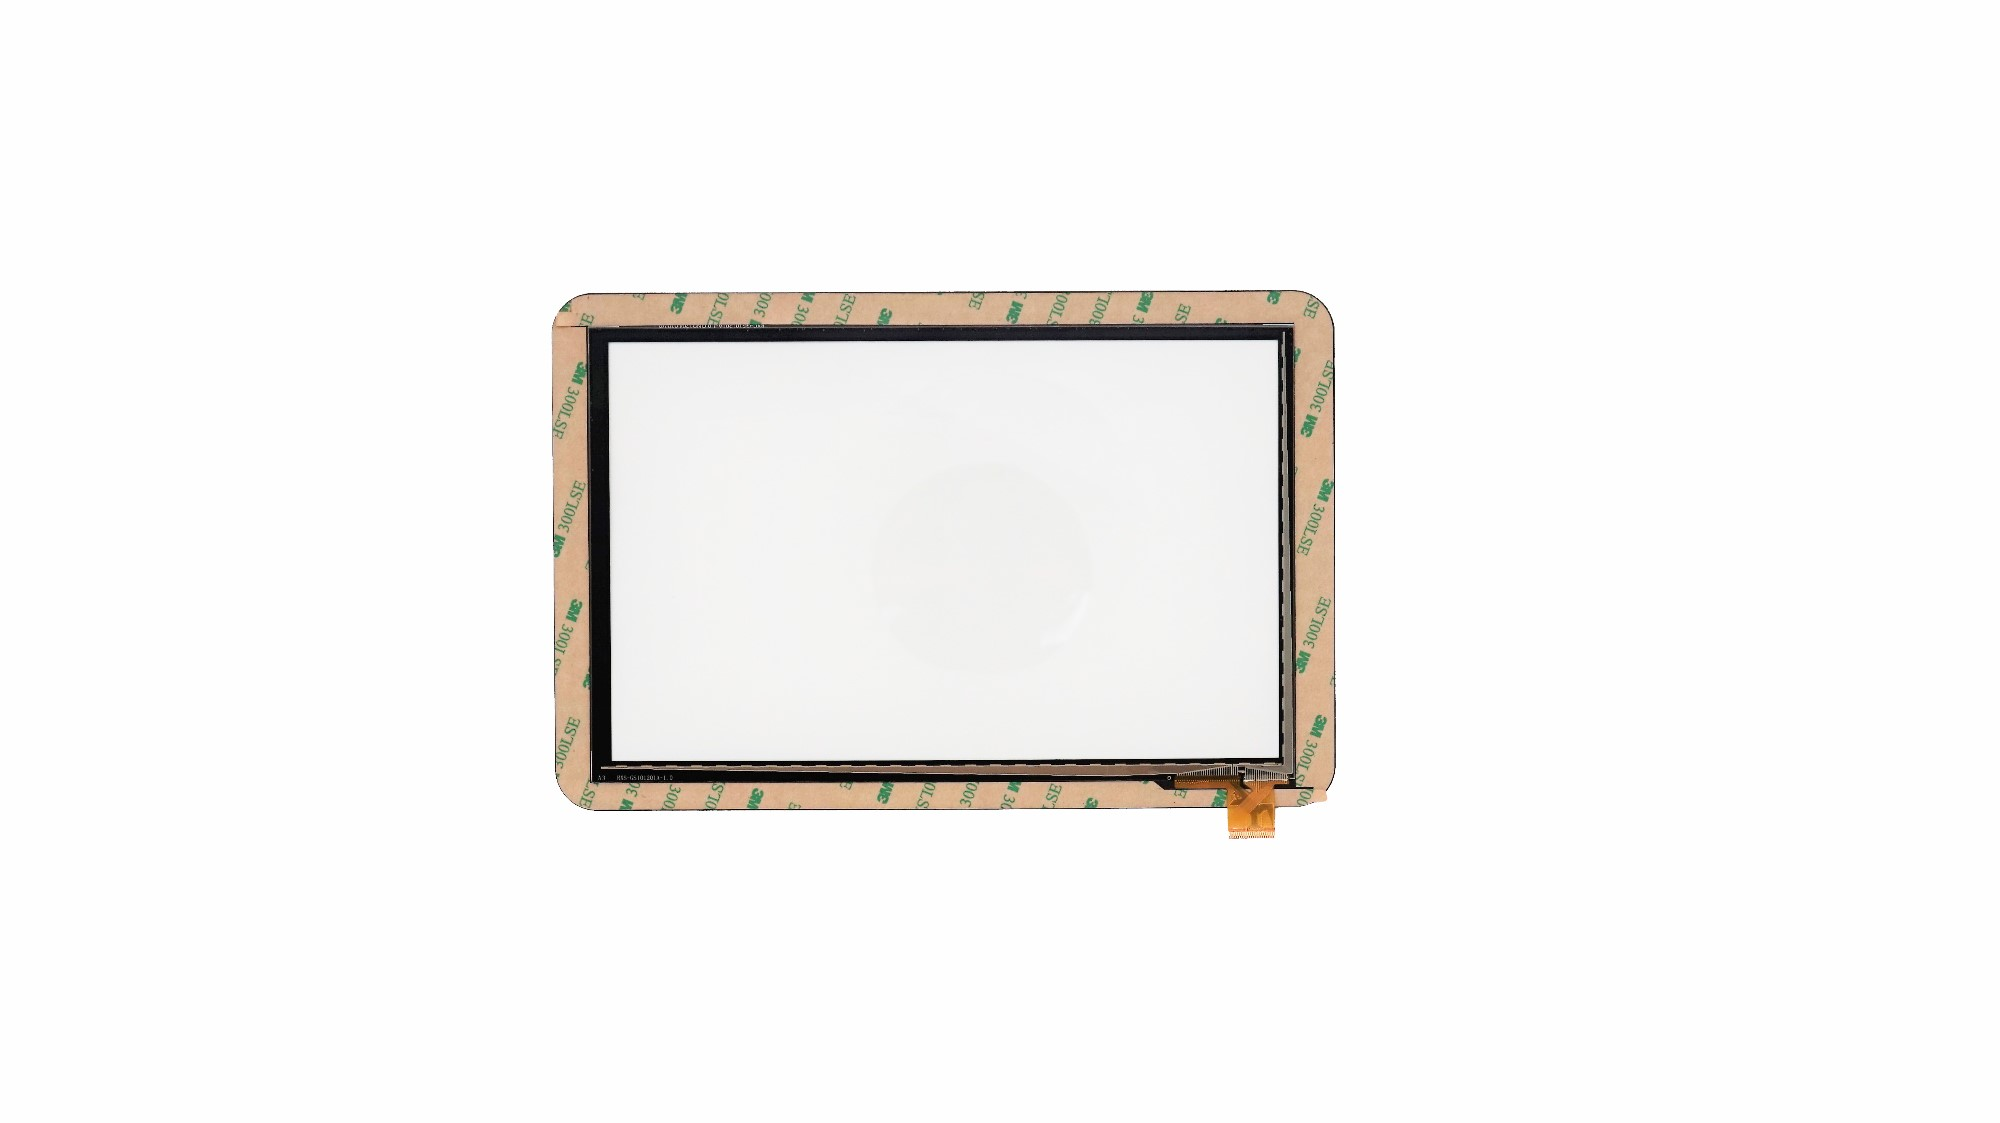 Custom China 10.1 Inch 5 Points 10 Points Capacitive Touch Panel, 10.1 Inch 5 Points 10 Points Capacitive Touch Panel Factory, 10.1 Inch 5 Points 10 Points Capacitive Touch Panel OEM